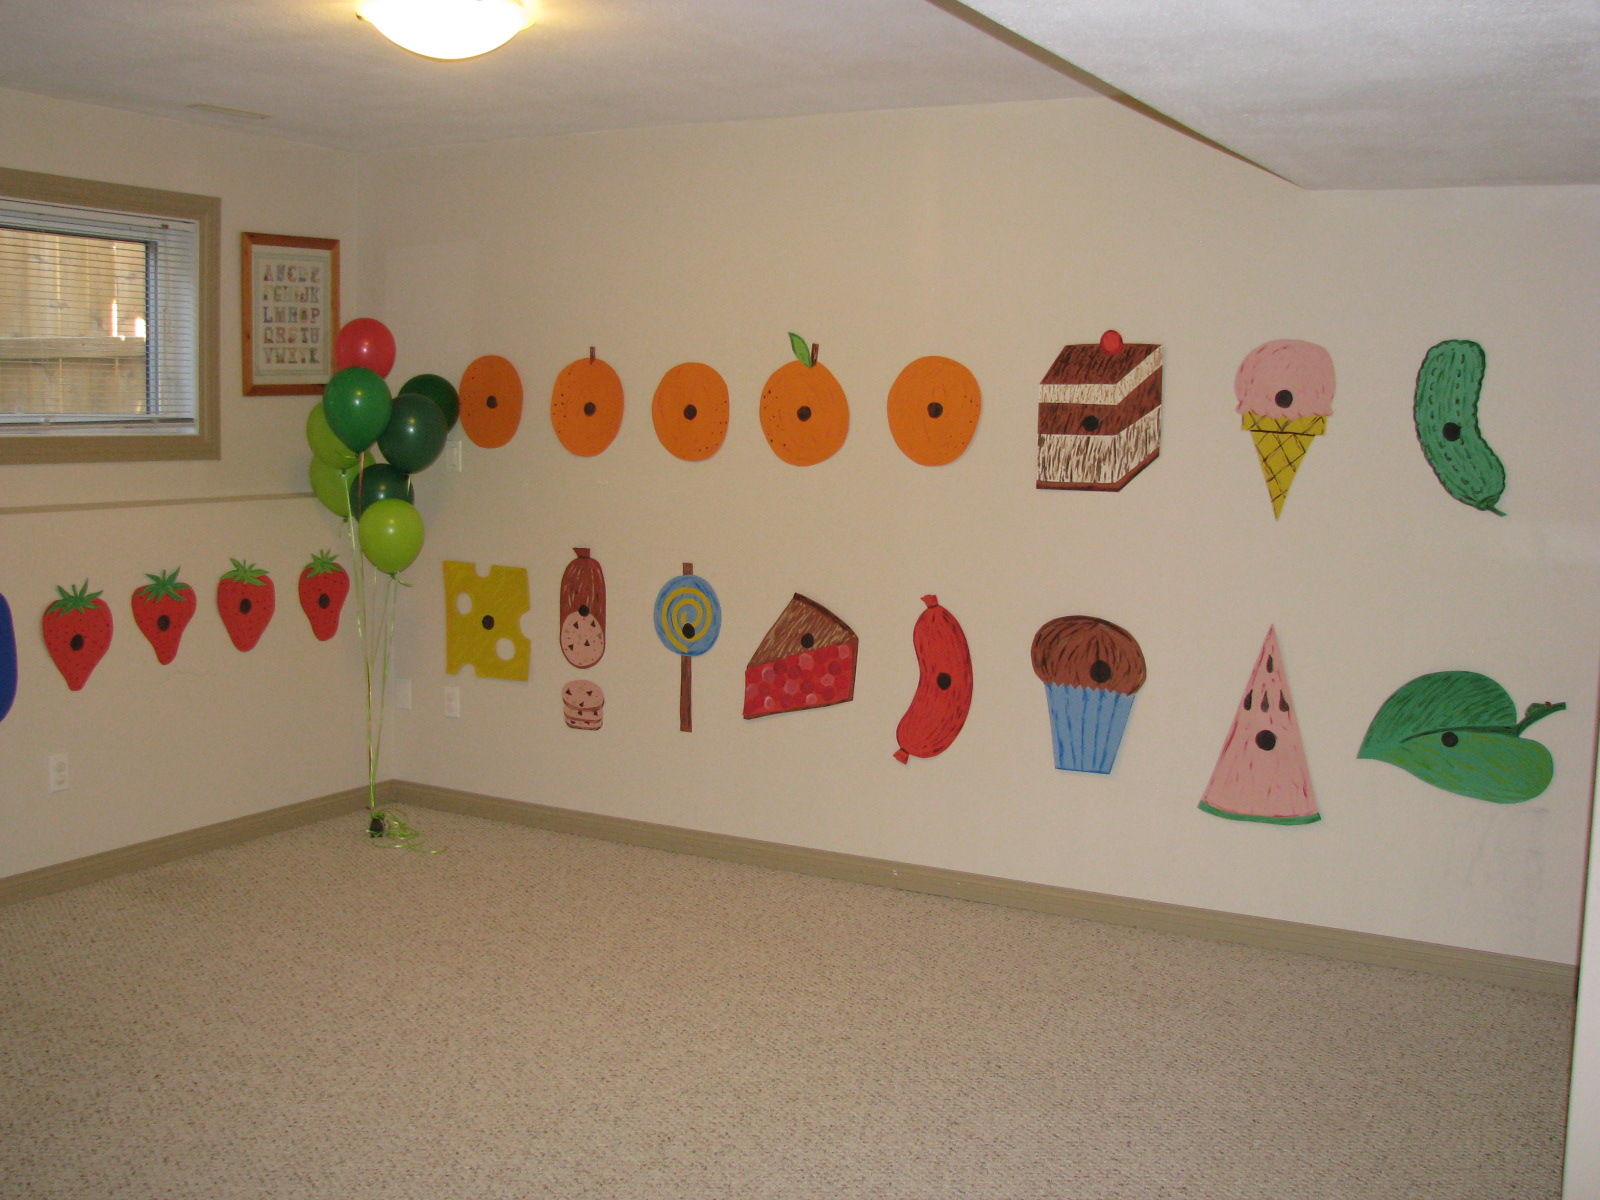 Making Merry Memories: The Very Hungry Caterpillar Party